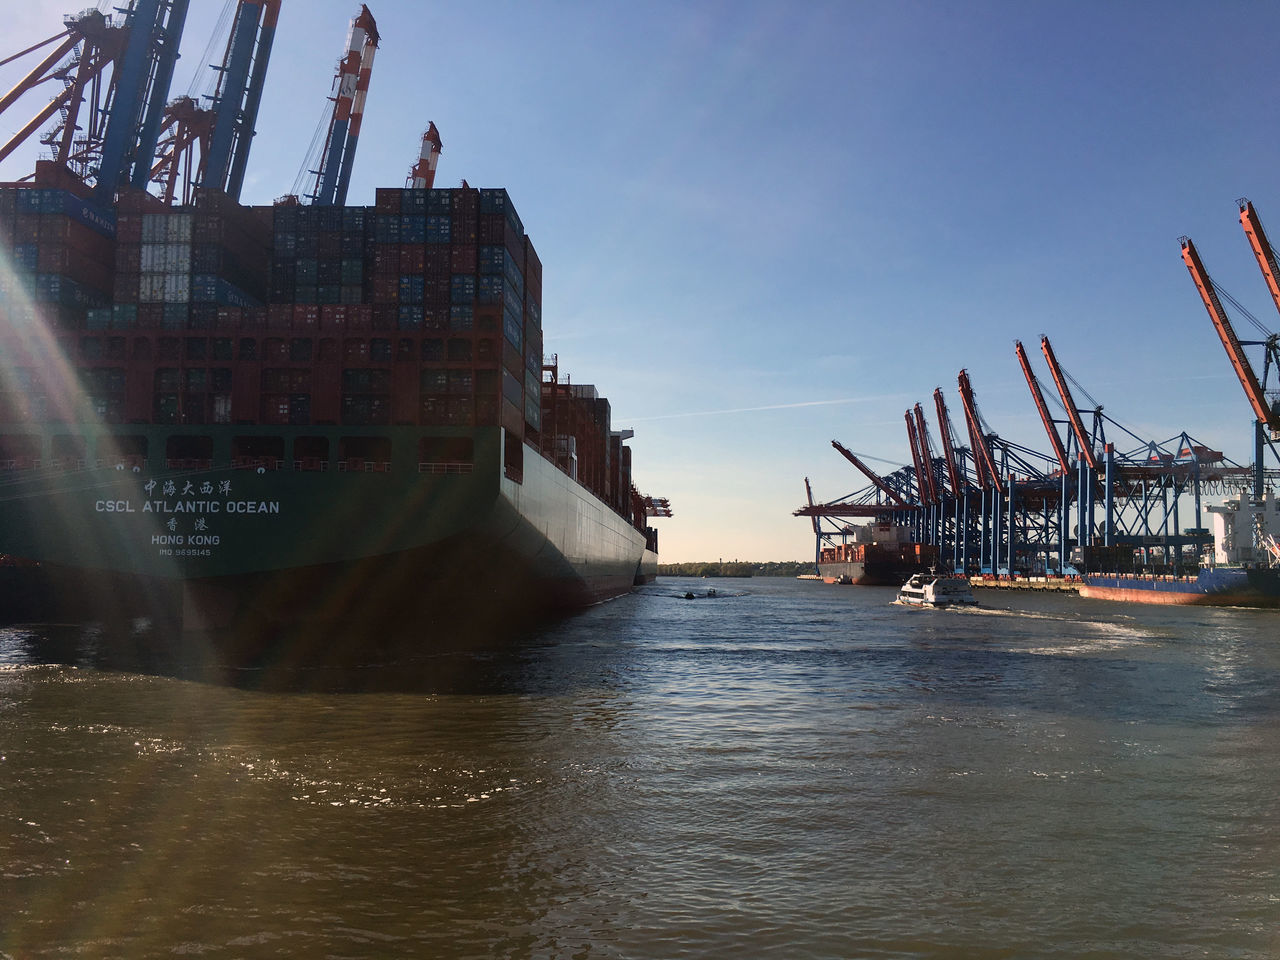 Commercial Dock Container Container Port Container Ship Crane Crane - Construction Machinery Development Dock Freight Transportation Hamburg Hamburger Hafen Harbor Industry Mode Of Transport Nautical Vessel Outdoors Reflection Schiff Sea Ship Shipping  Transportation Tugboat Water Waterfront